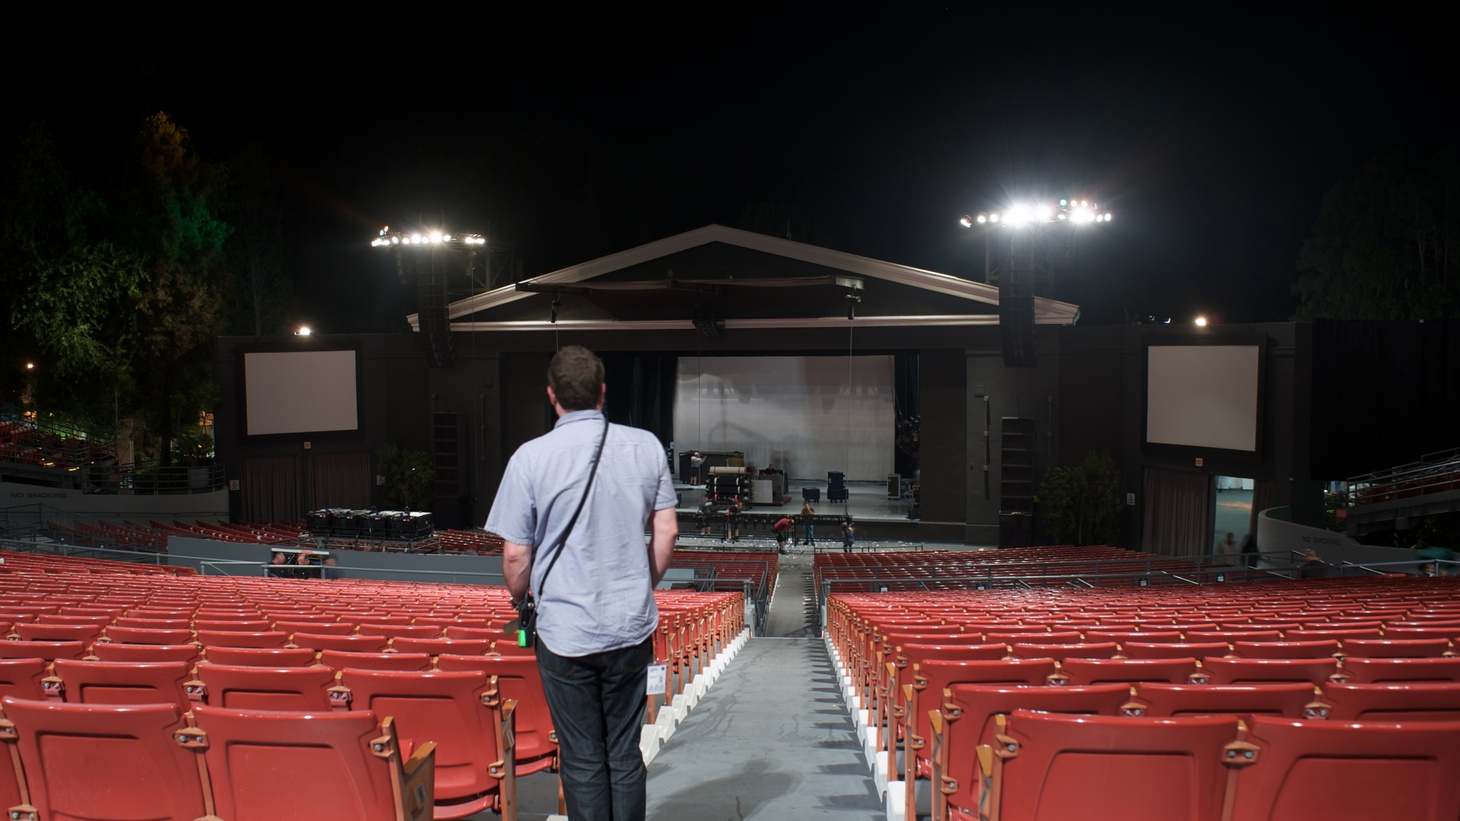 The Greek Theatre in LA's Los Feliz neighborhood is a historic icon that makes big money for the City of Los Angeles. August was its busiest month in more than a decade. Now, two entertainment behemoths are battling for the contract to run it. What's best for concert-goers, the city—and for the neighborhood?